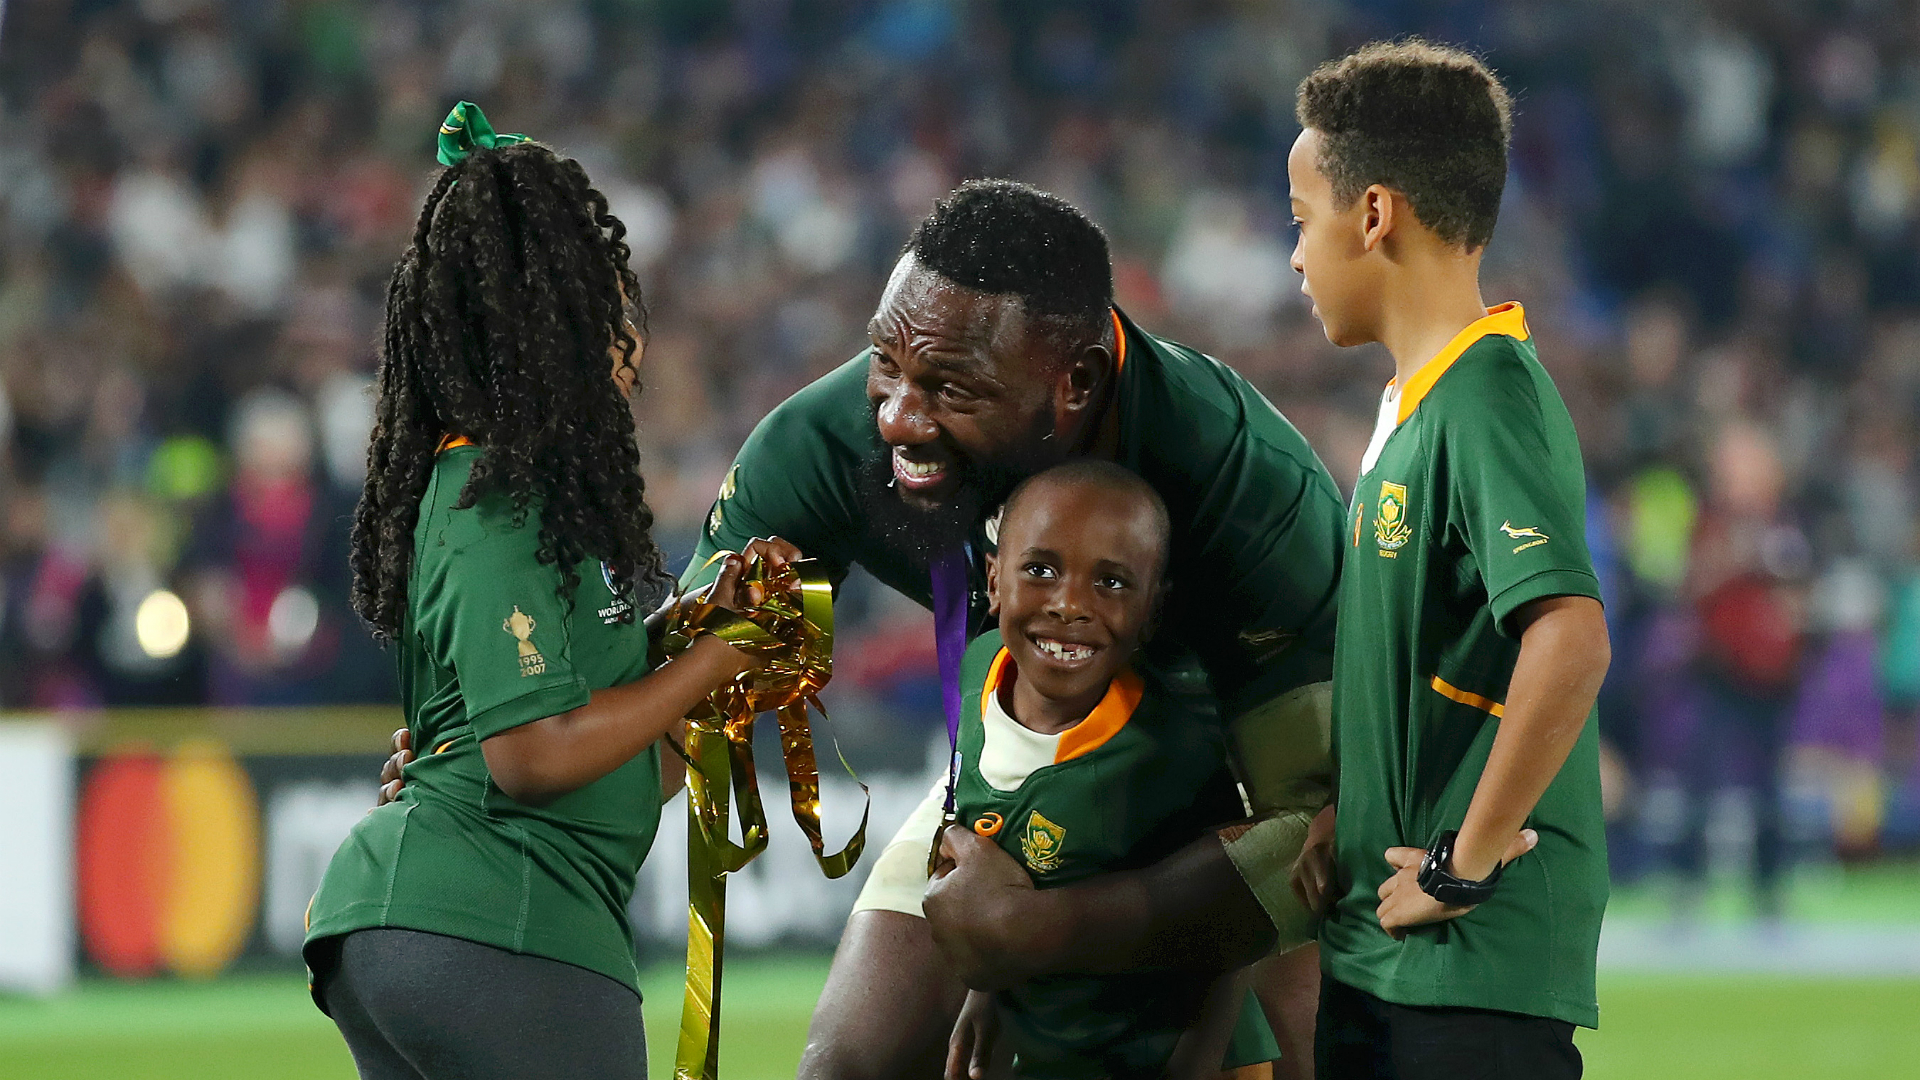 South Africa great Tendai Mtawarira retires from Springboks after World Cup 'perfect ending'